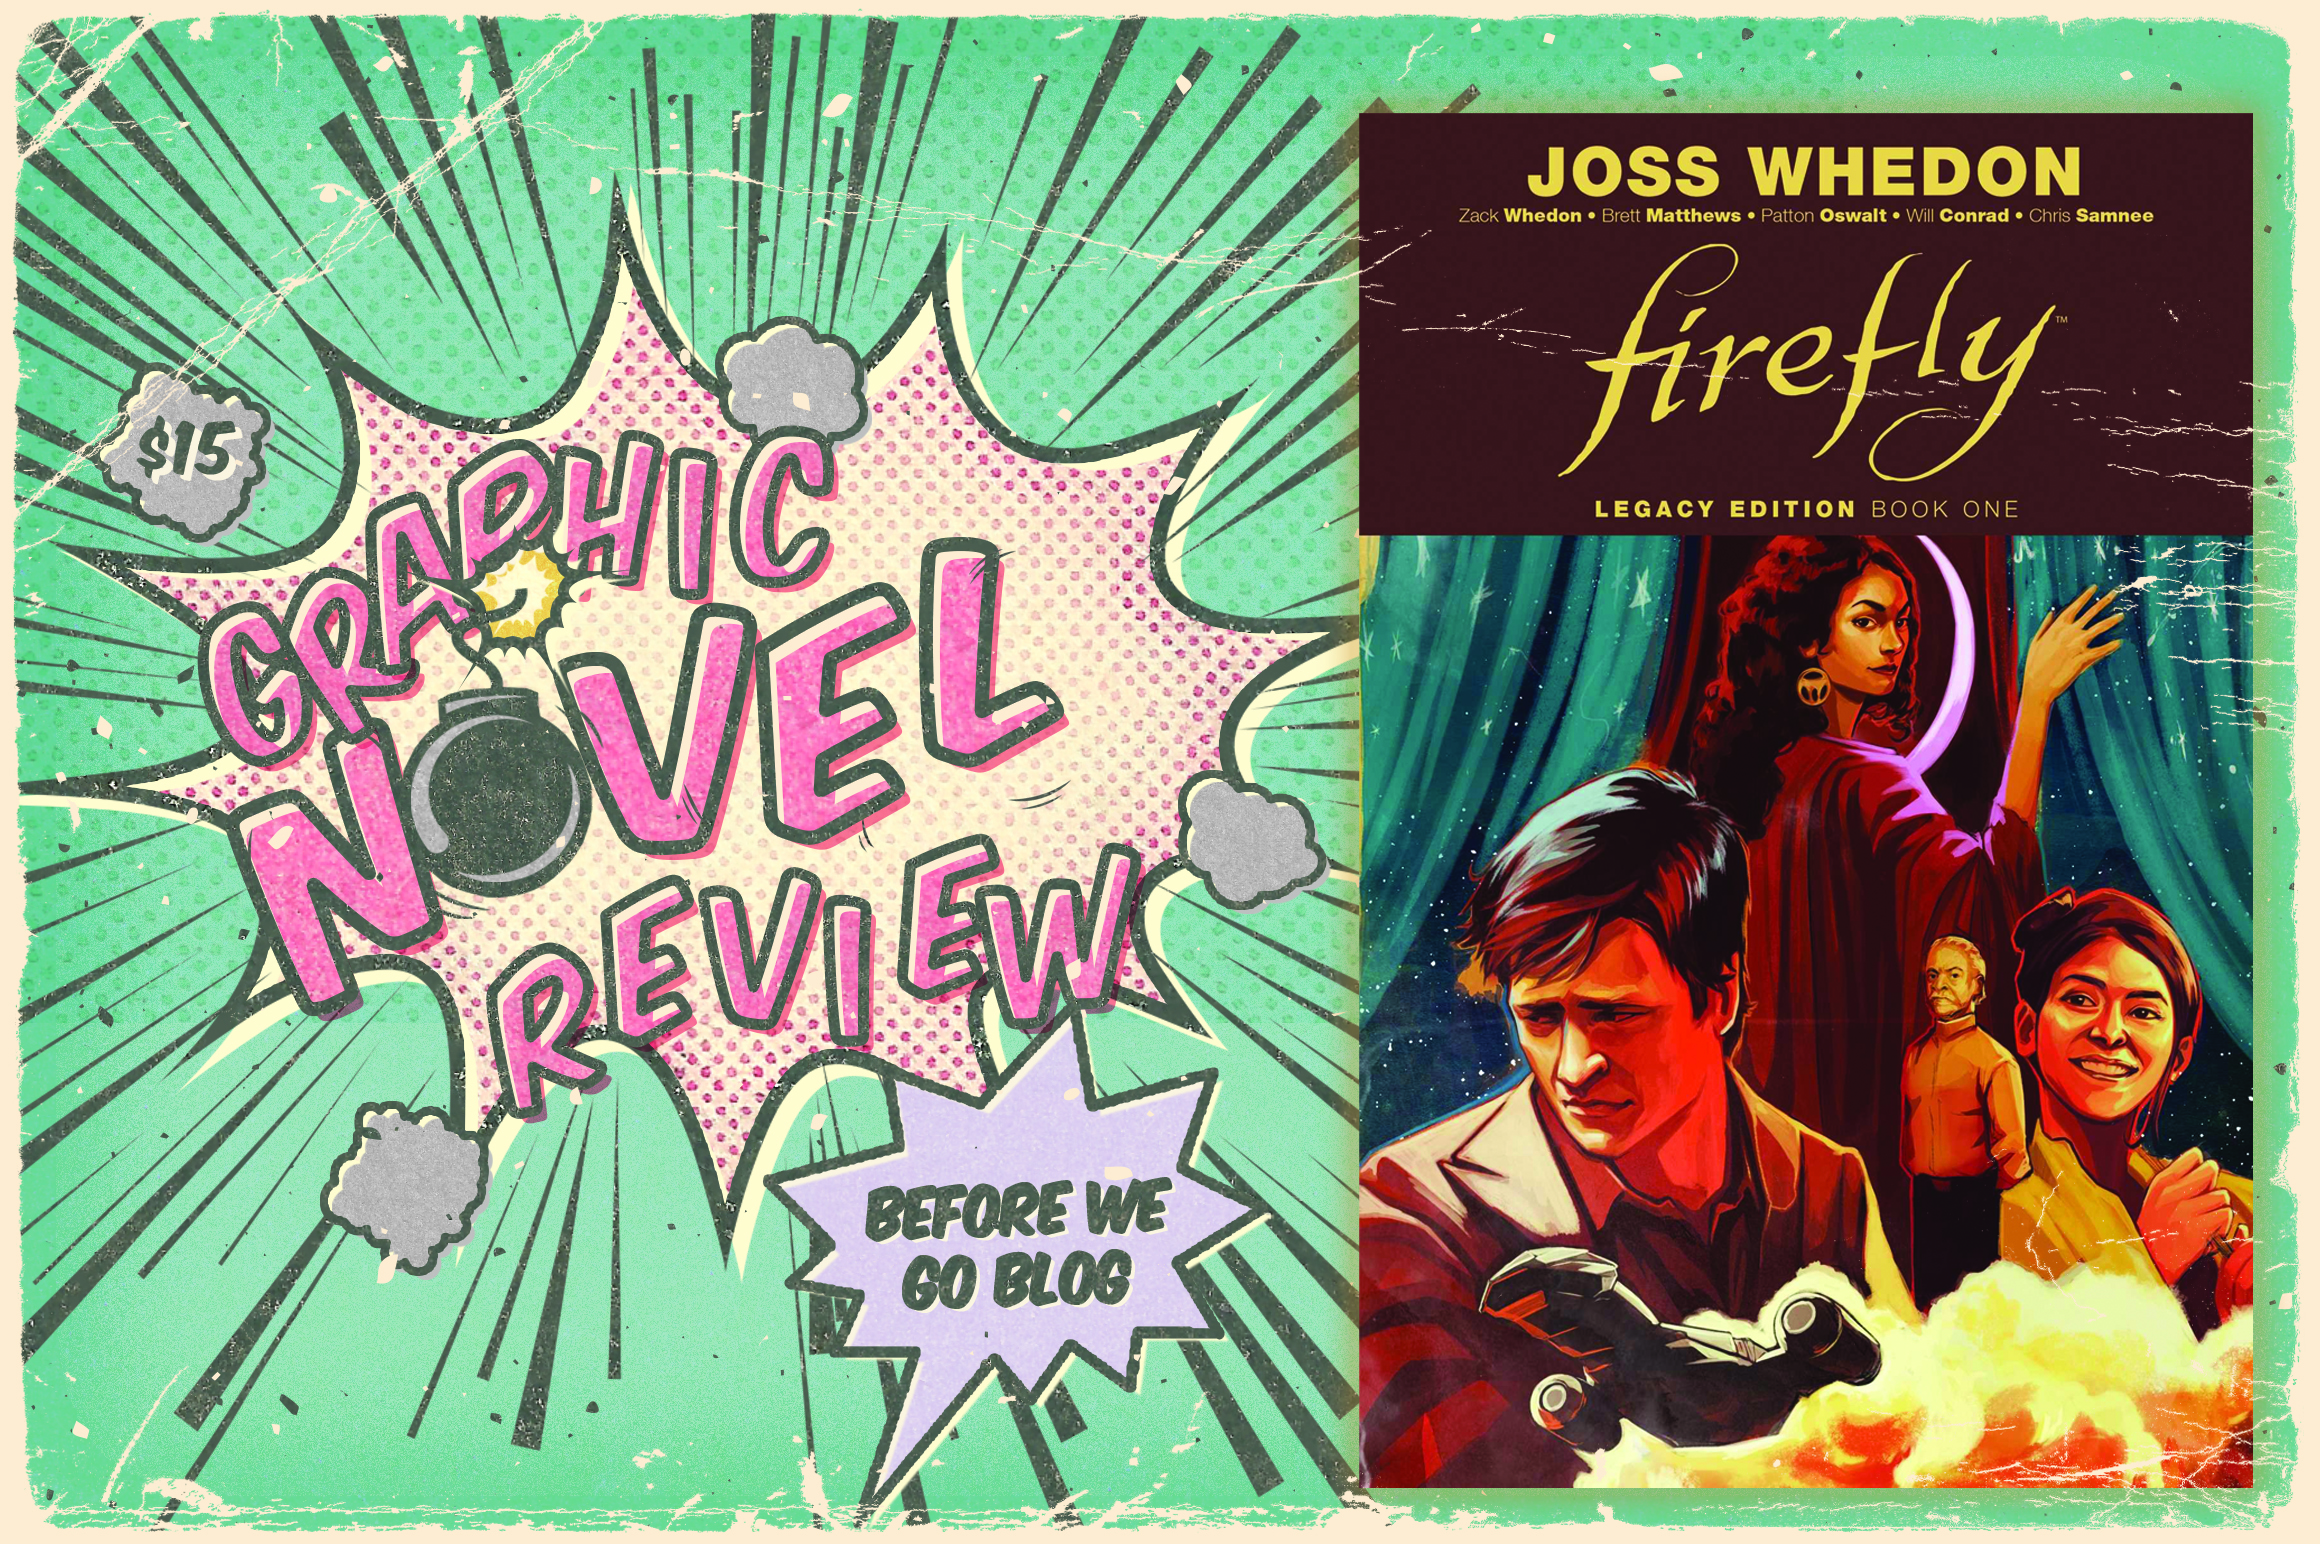 Graphic Novel Review – Firefly: Legacy Edition Book One by Joss Whedon